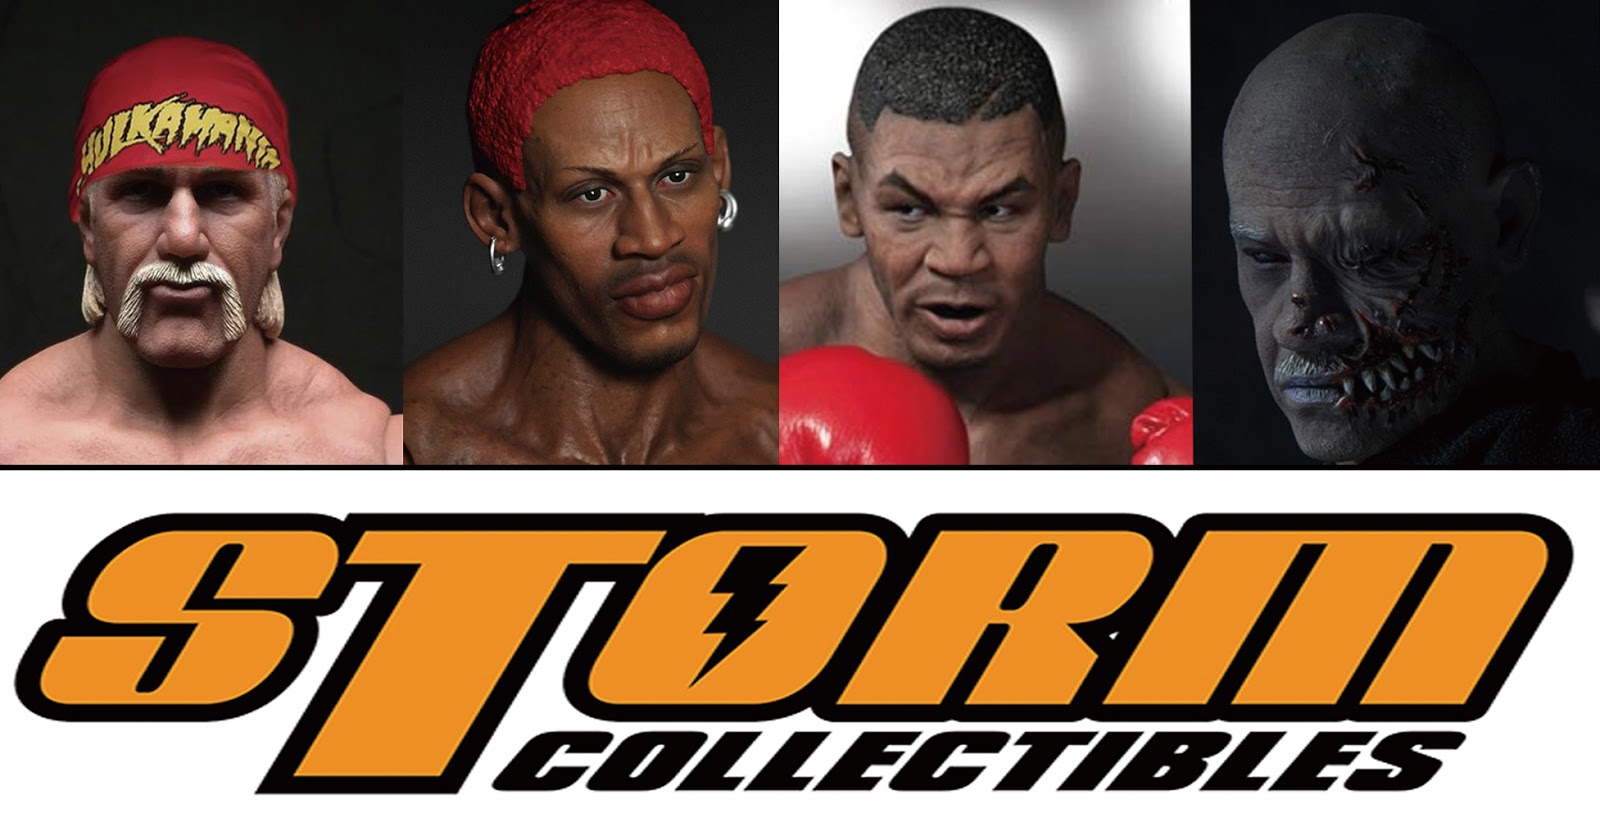 osw.zone (疆屍.泰臣.賀根.洛文)STORM COLLECTIBLES 創辦人Eddie專訪 - Toys Zone D 玩具兄弟 -Figures Price List. Reviews 2015-08-16 05:52:55 SC